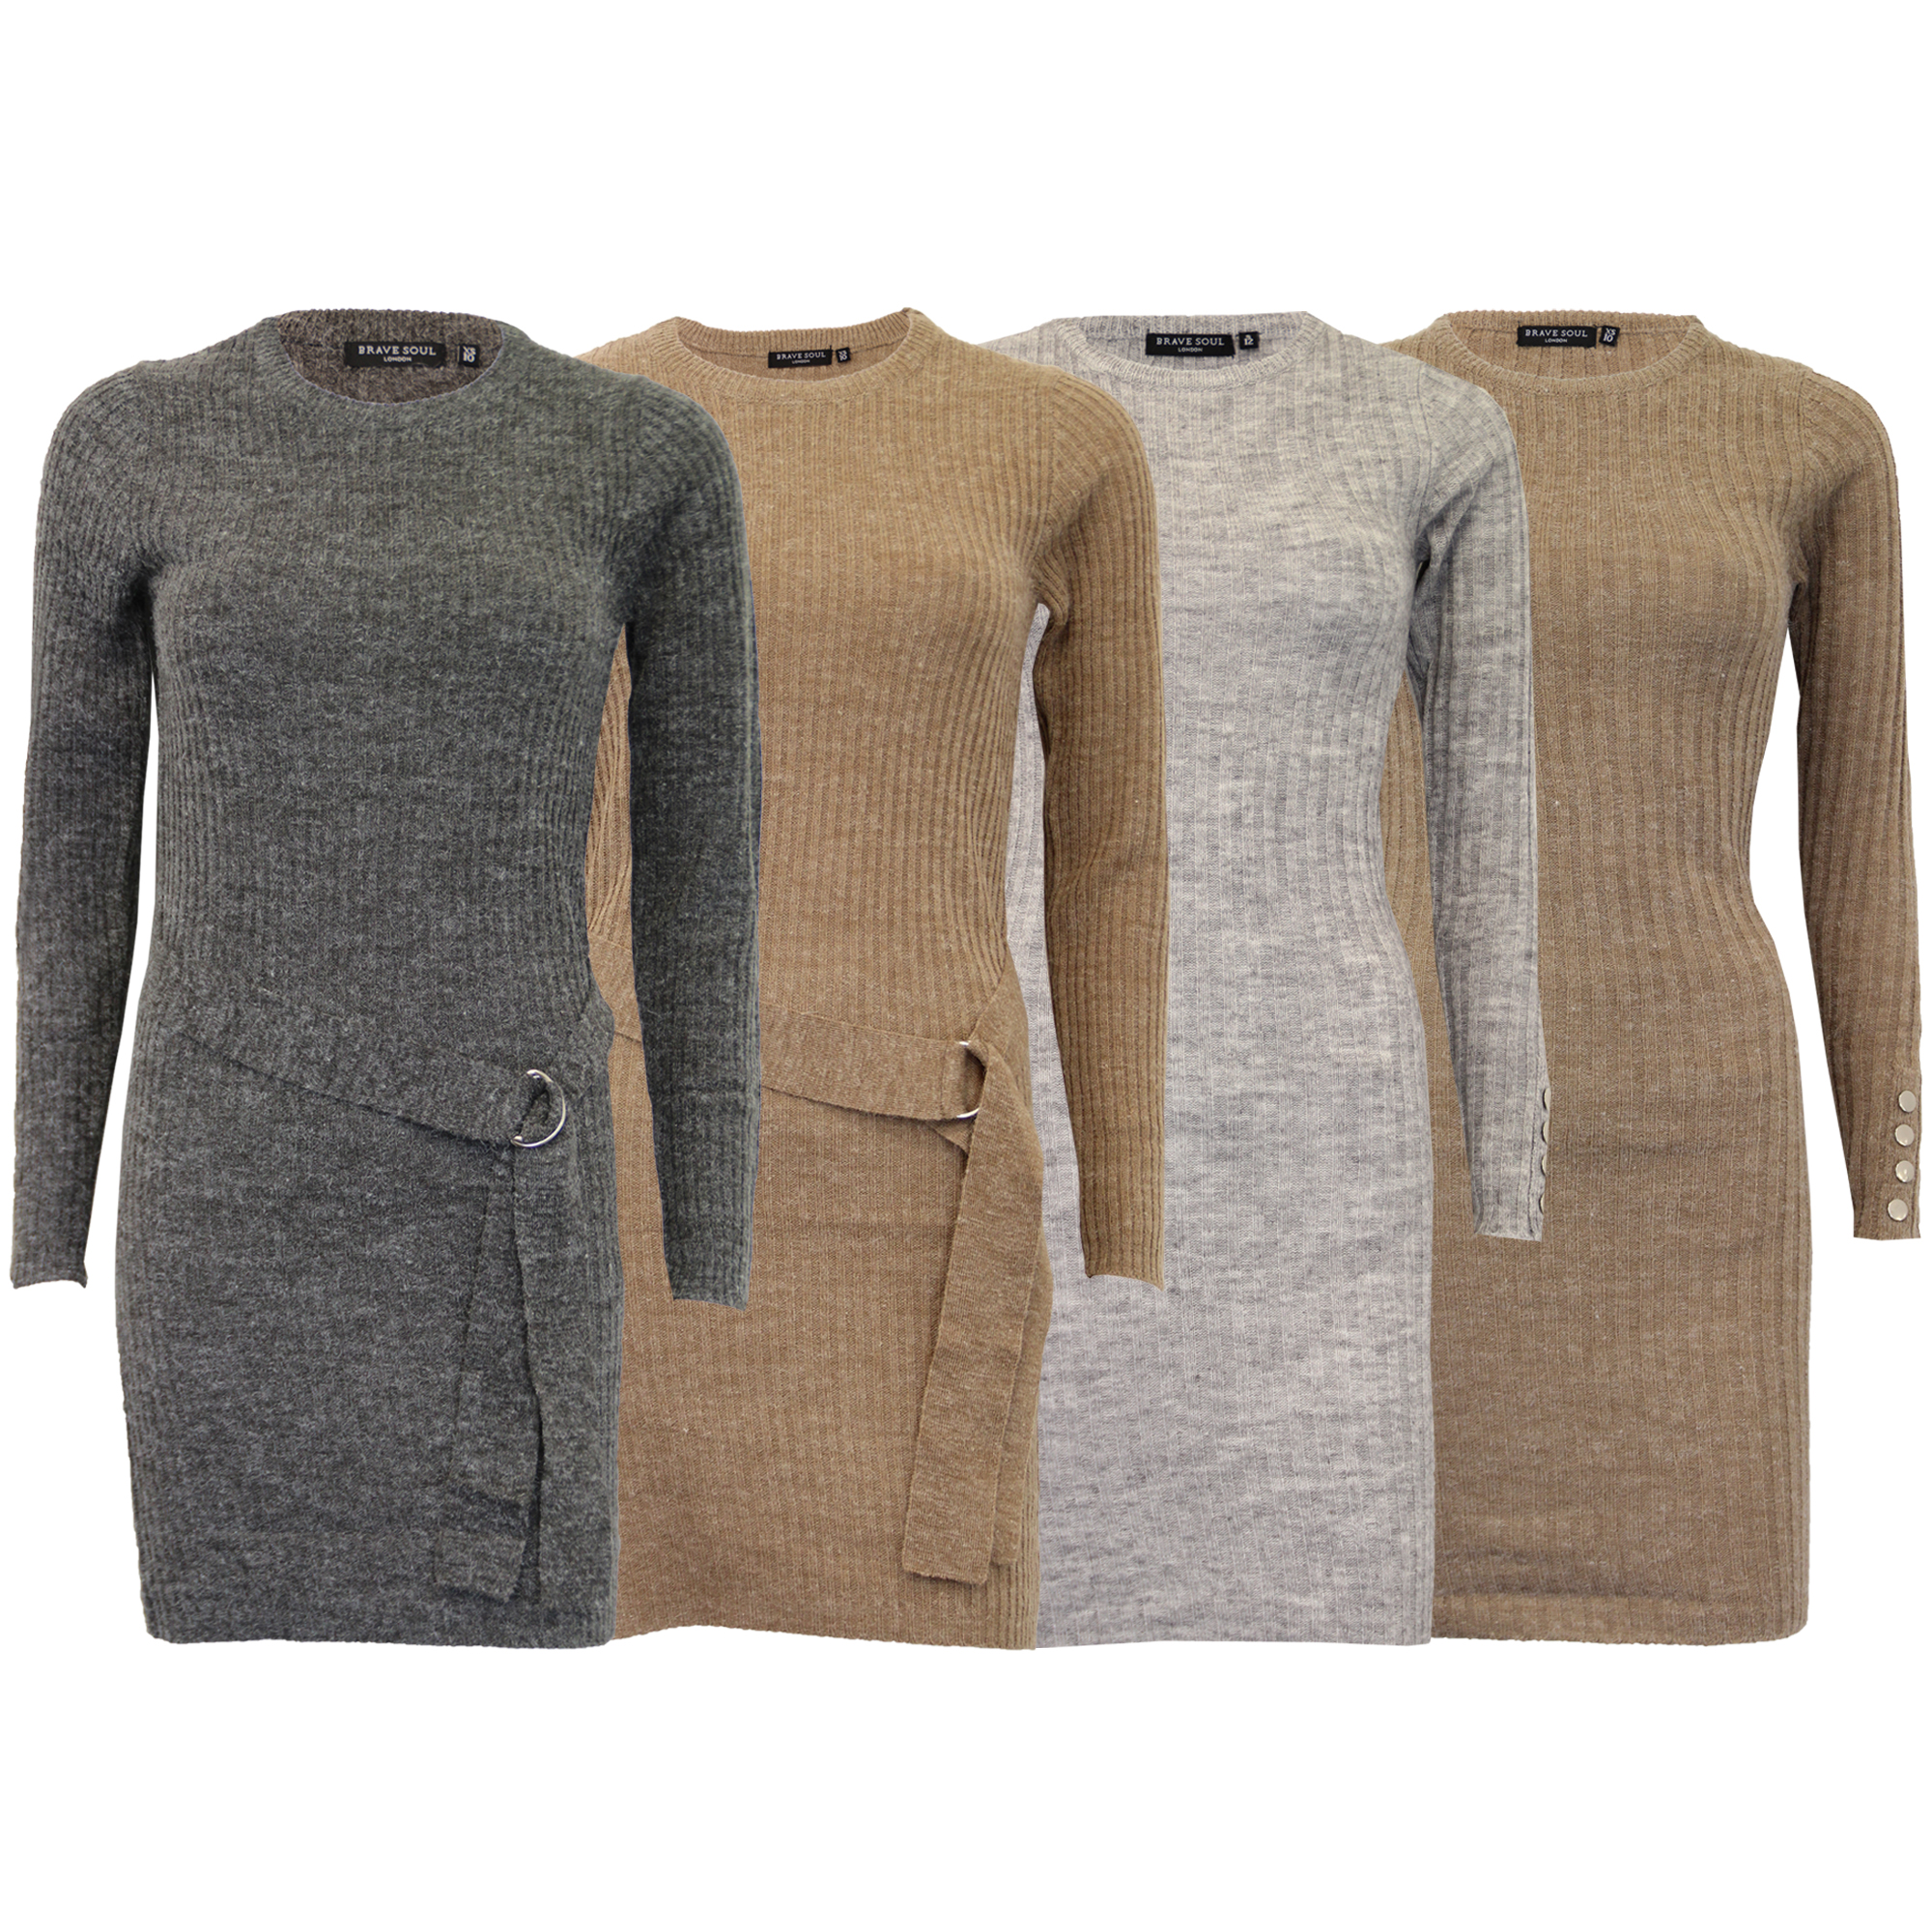 a4da367dcd68 Ladies Jumpers Brave Soul Womens Knitted Long Dress Ribbed Sweater ...